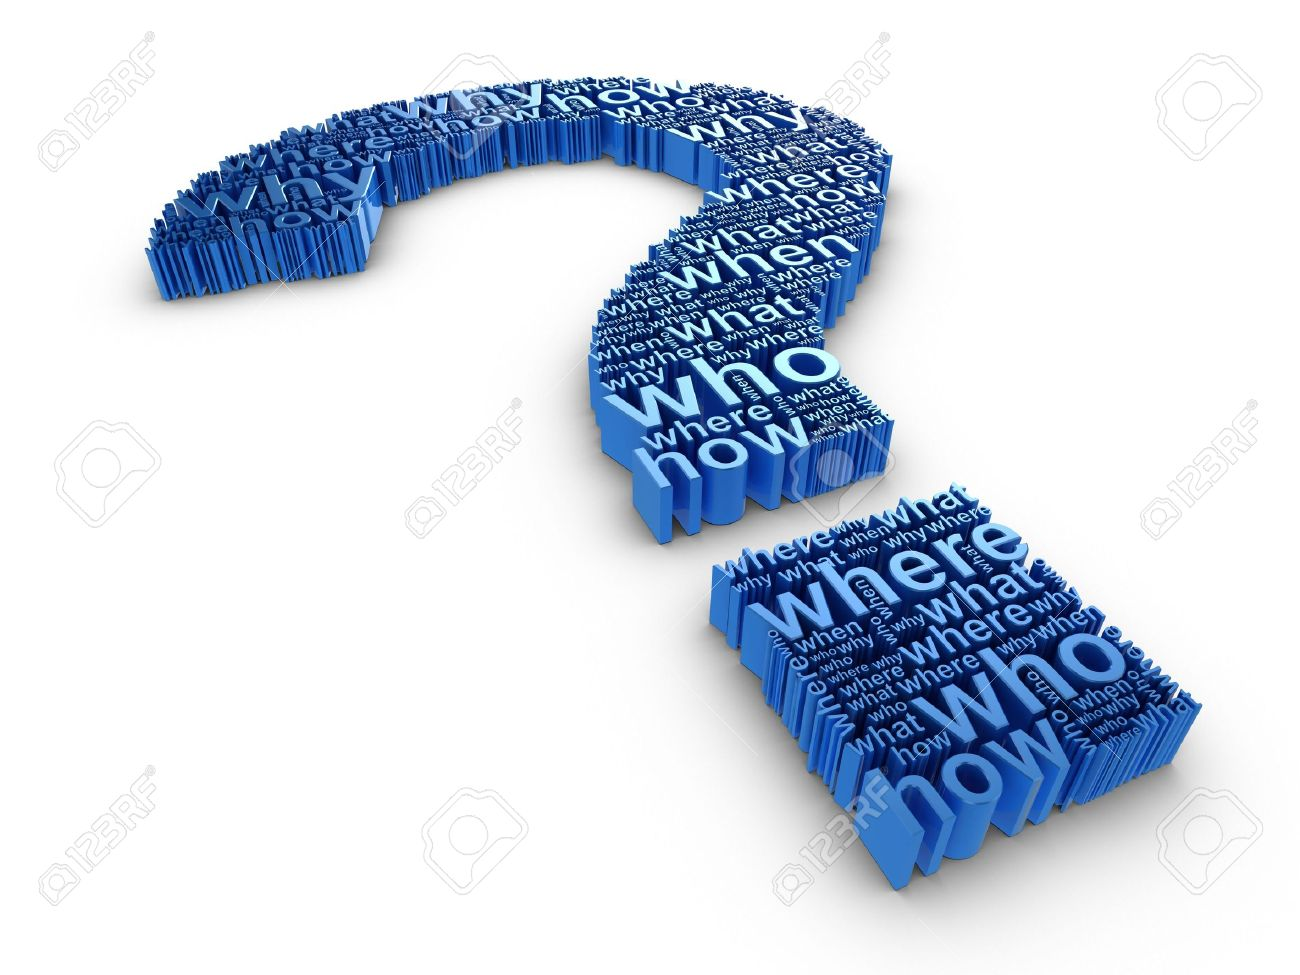 http://previews.123rf.com/images/aspect3d/aspect3d0911/aspect3d091100054/5864610-Blue-3d-question-mark-made-up-of-words-on-a-white-background-Stock-Photo.jpg